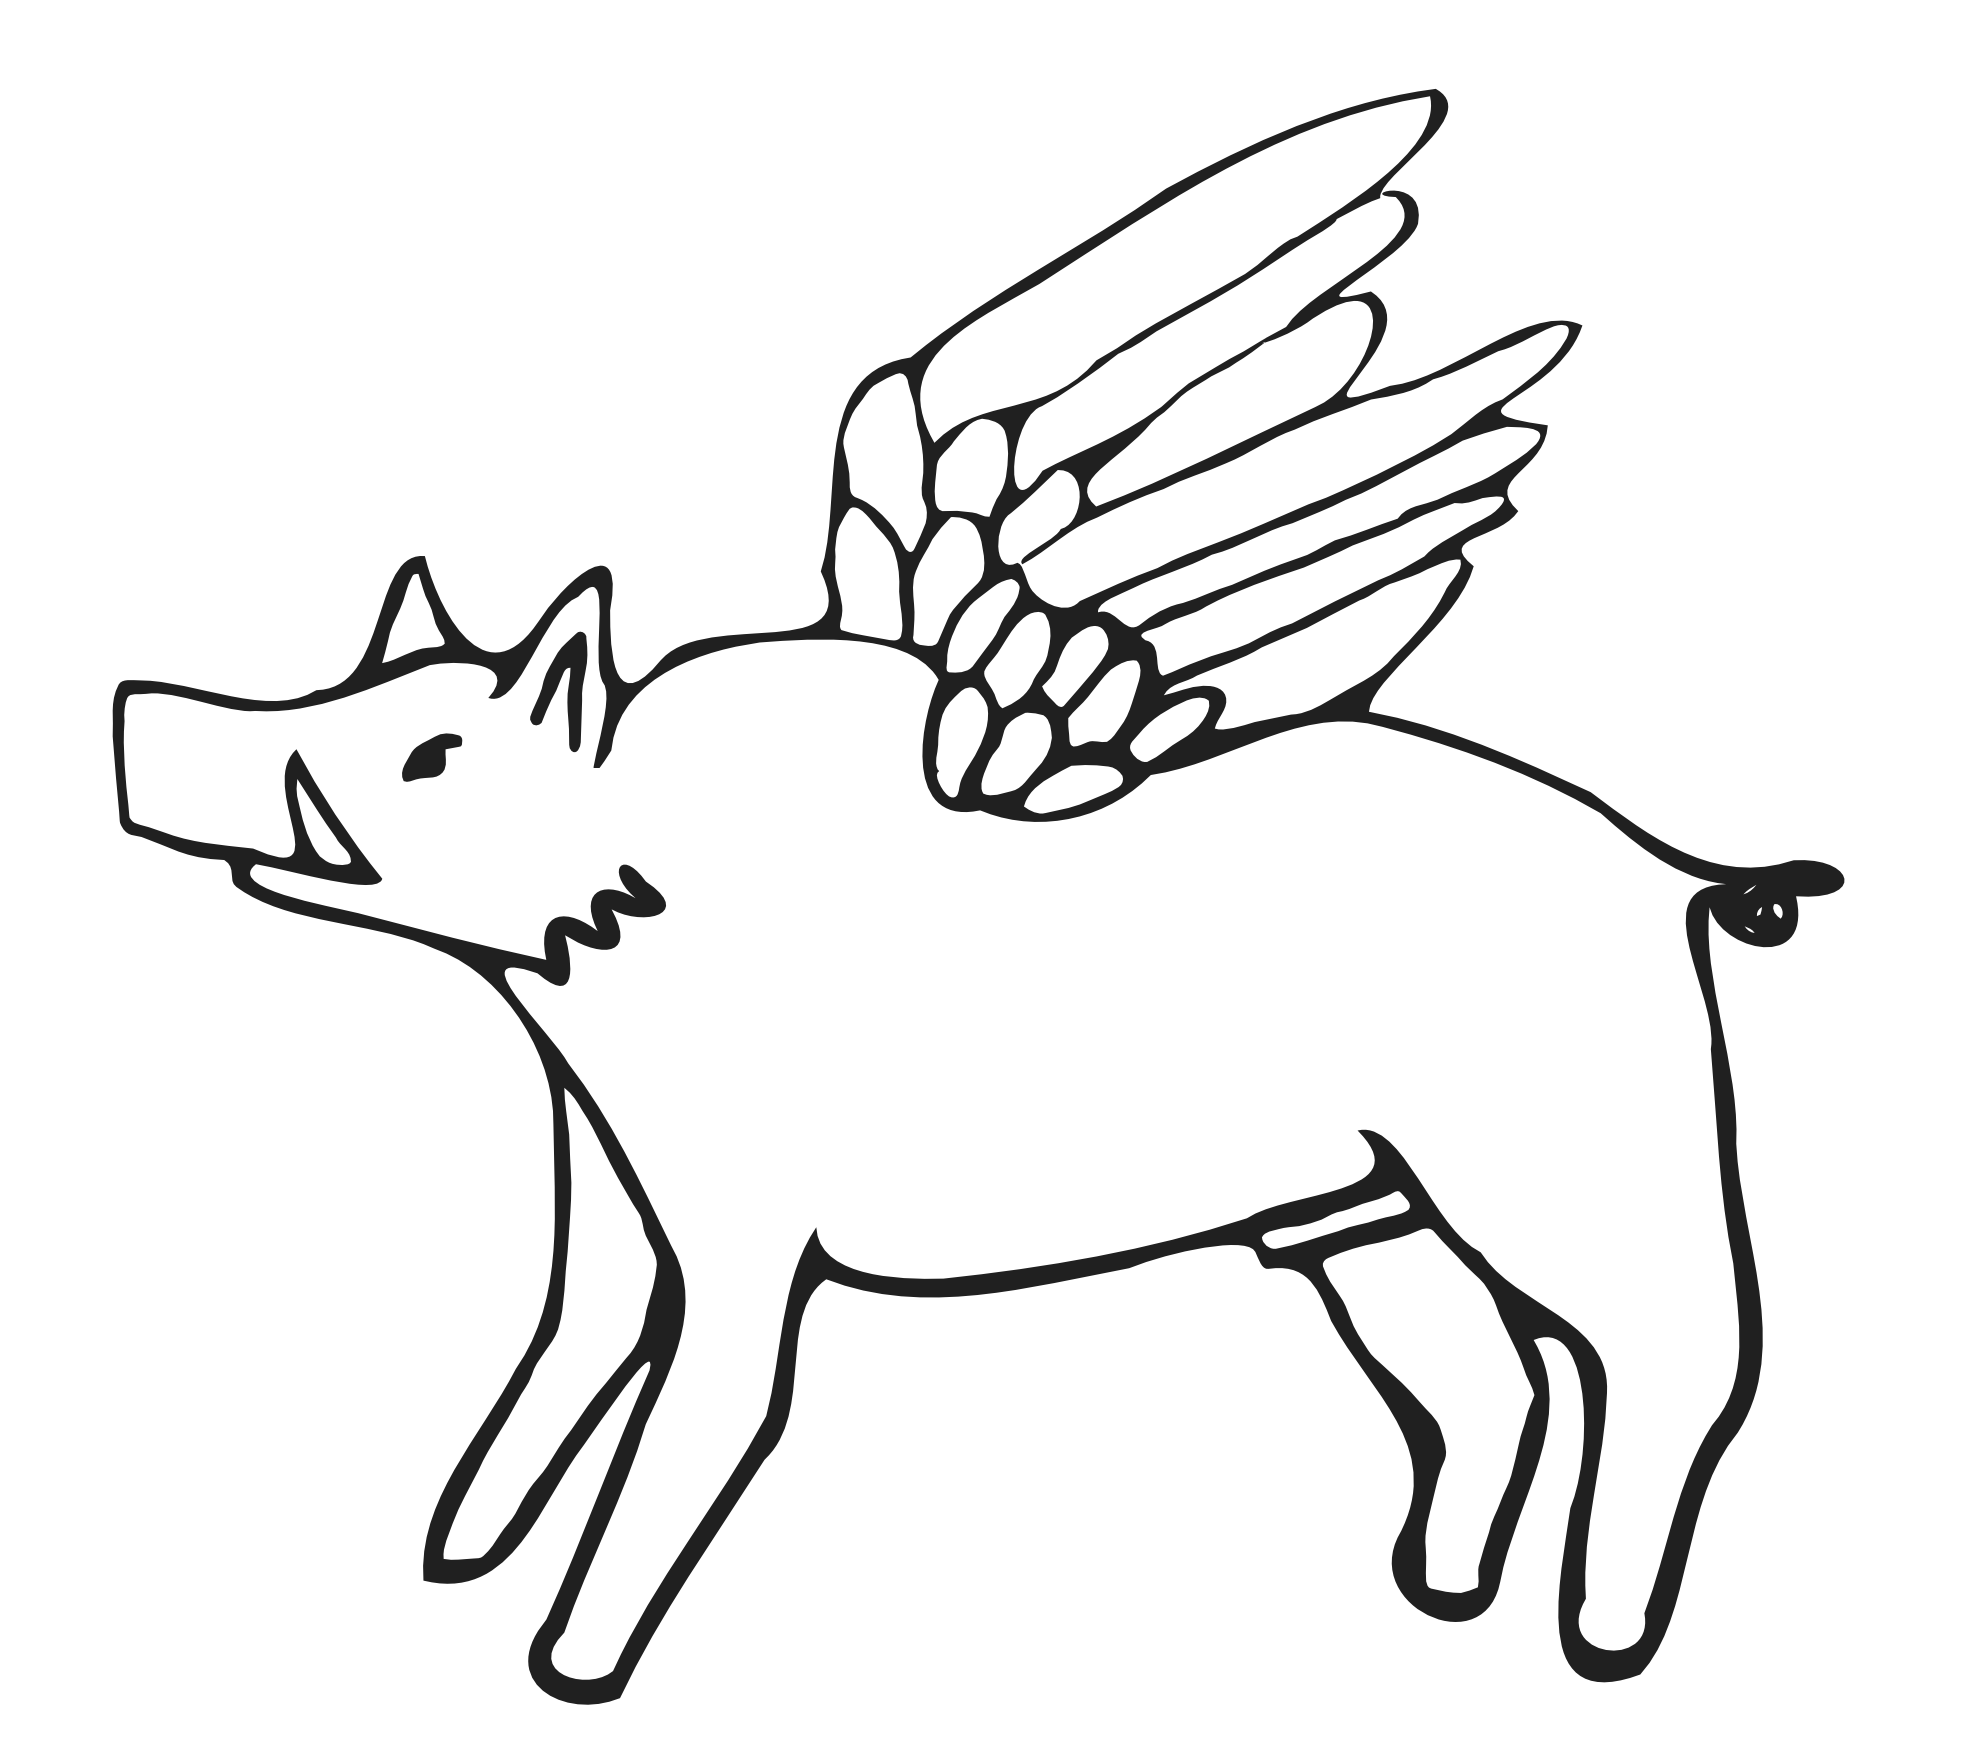 picture royalty free stock Flying pigs at getdrawings. Bronco drawing color